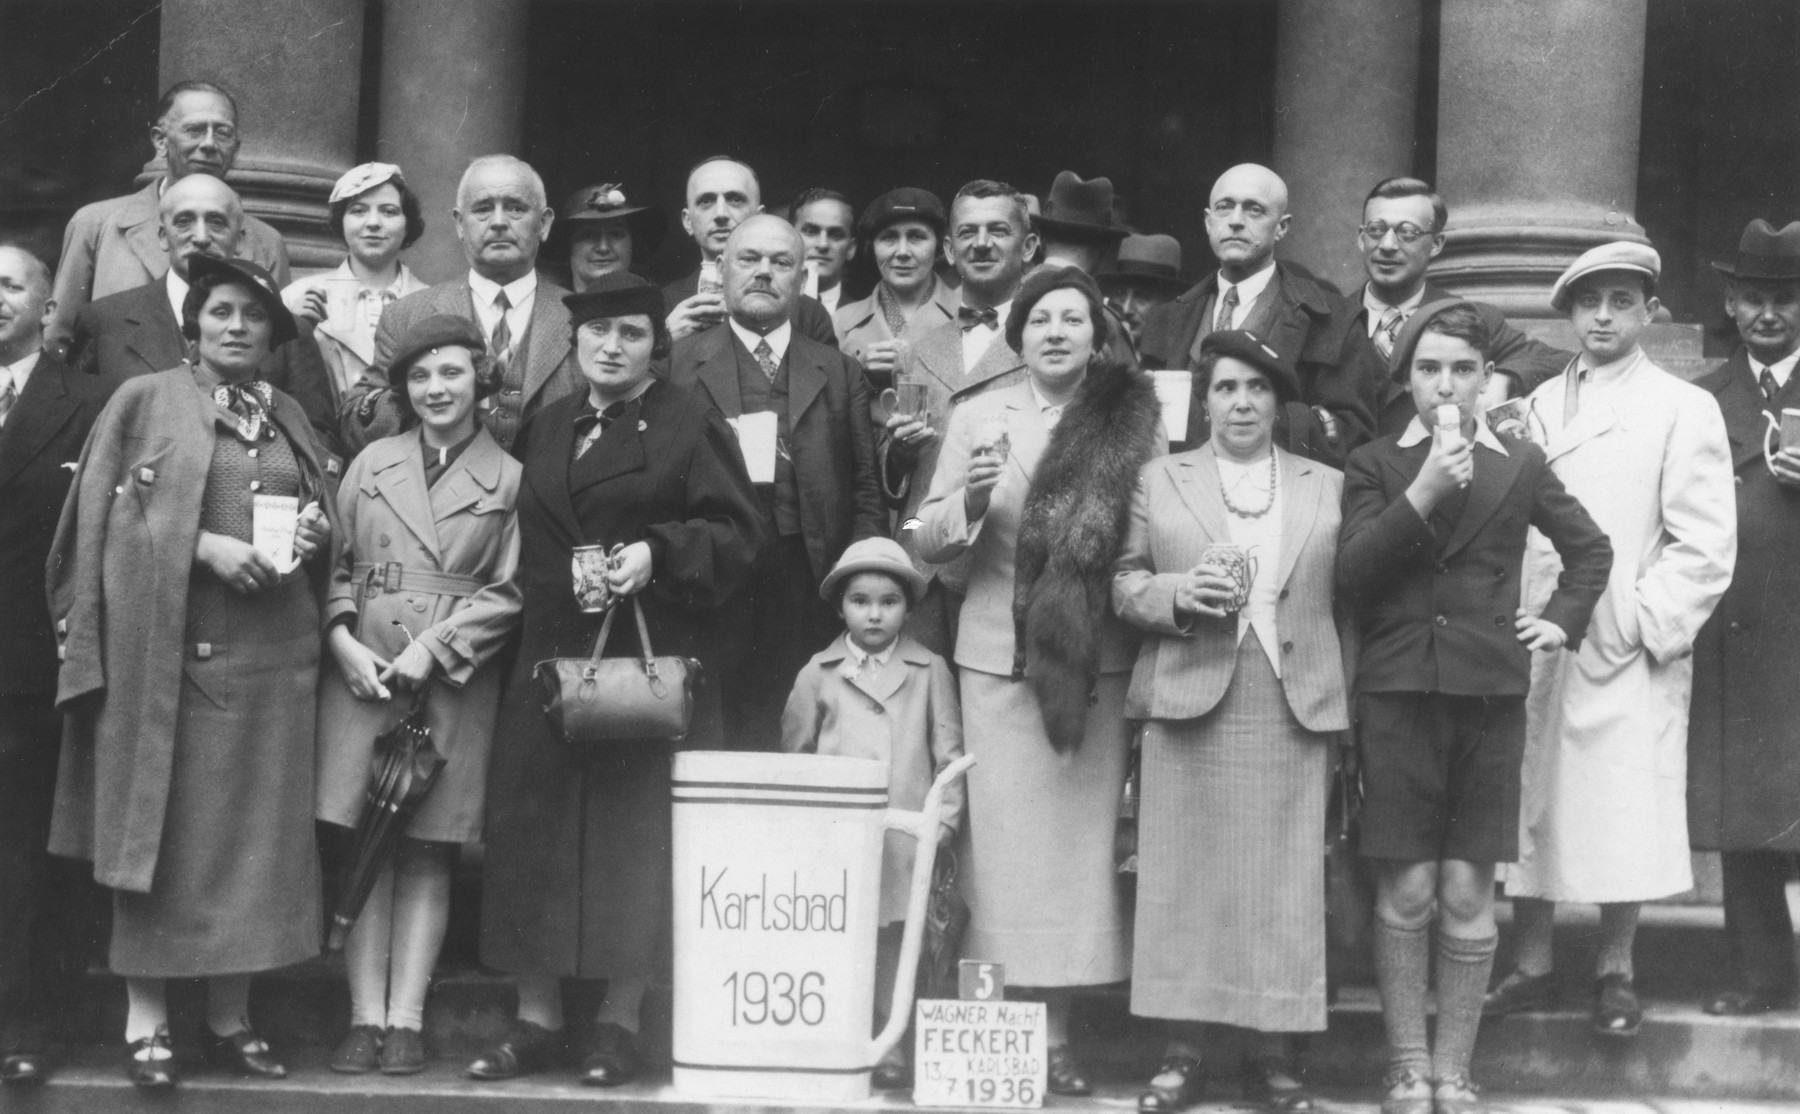 The Uszerowicz family poses with glasses of mineral water along with other patrons of a spa in Karlsbad.